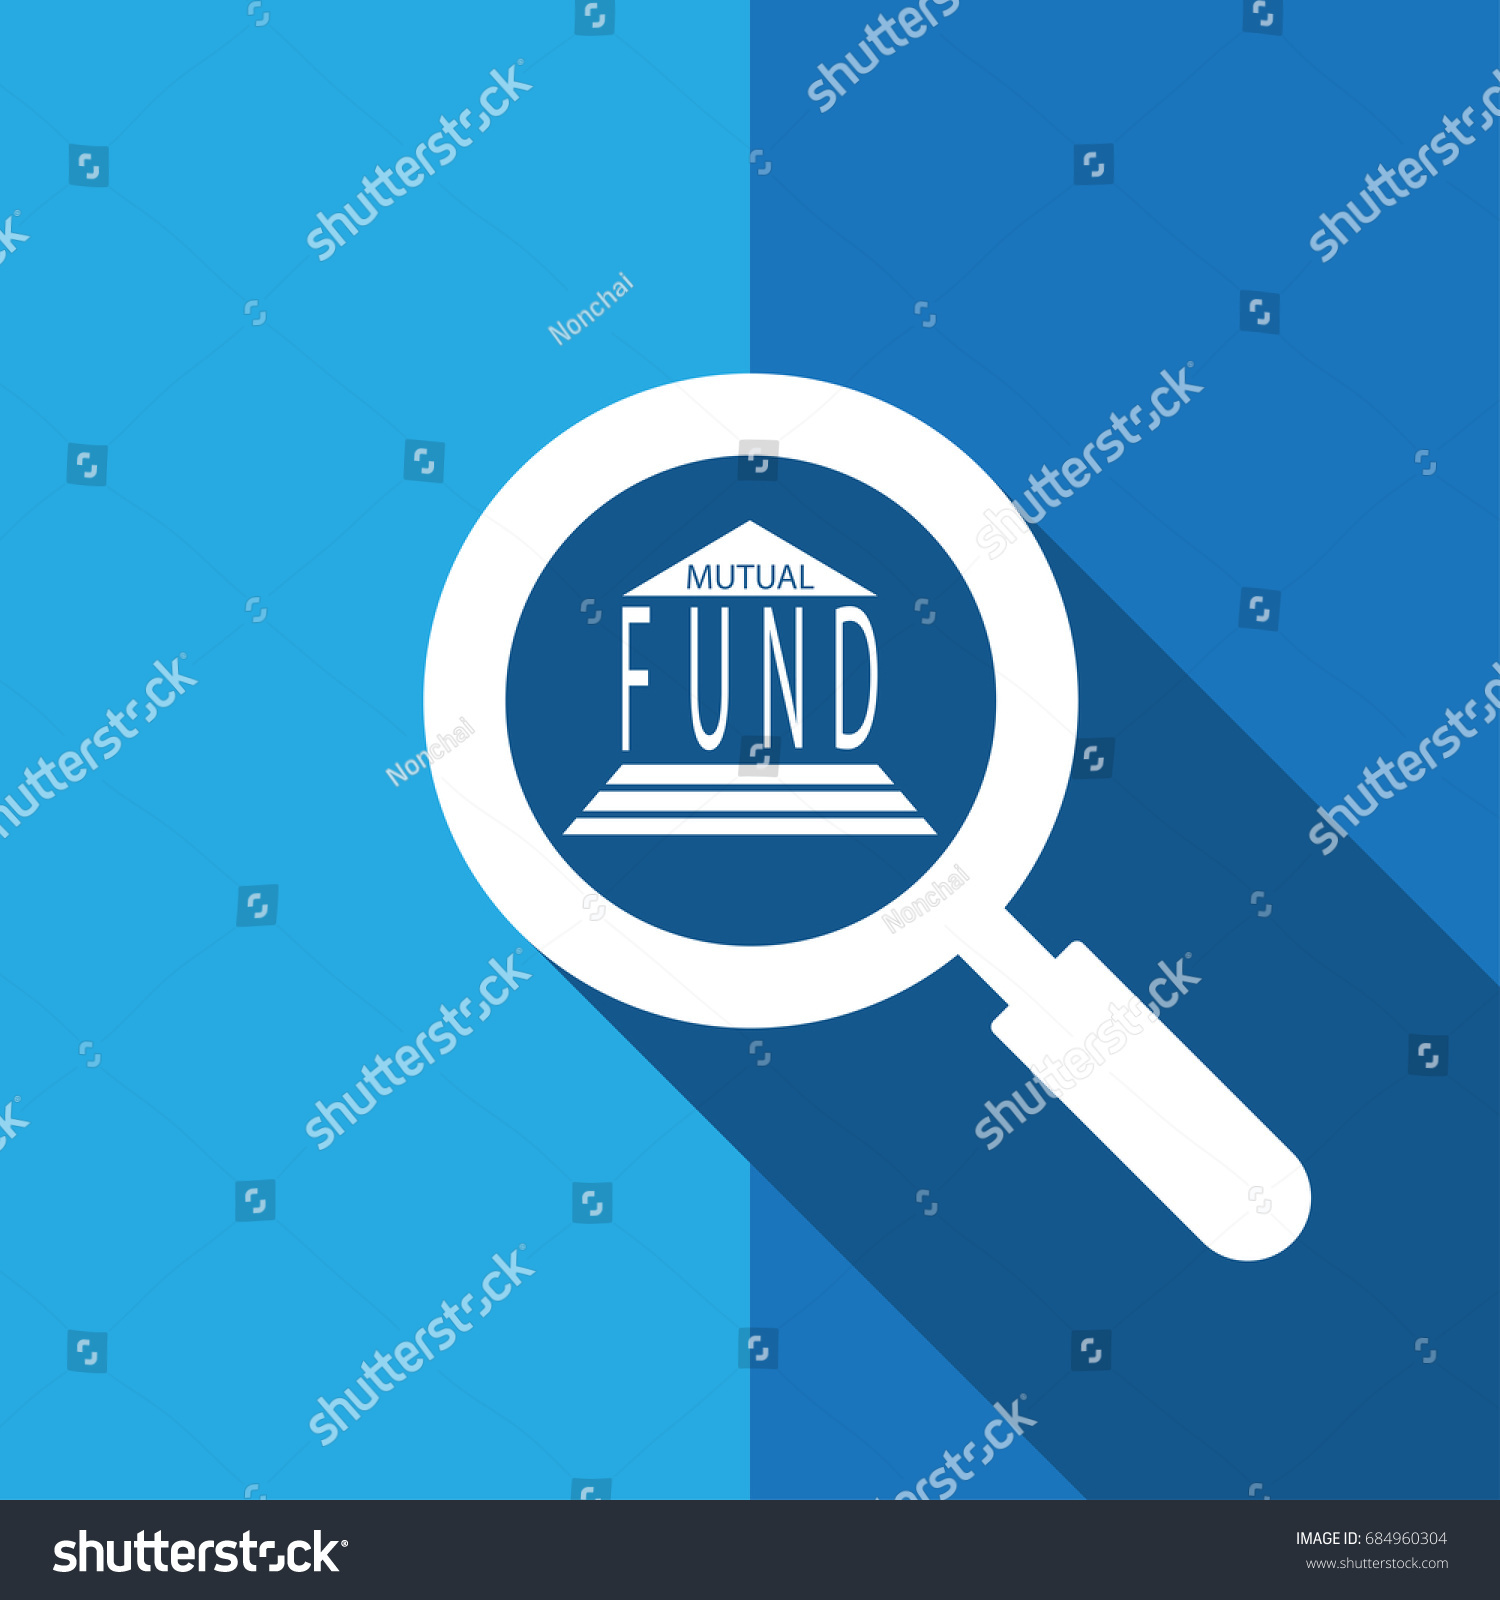 Search Find Mutual Fund Bond Investment Stock Vector Royalty Free